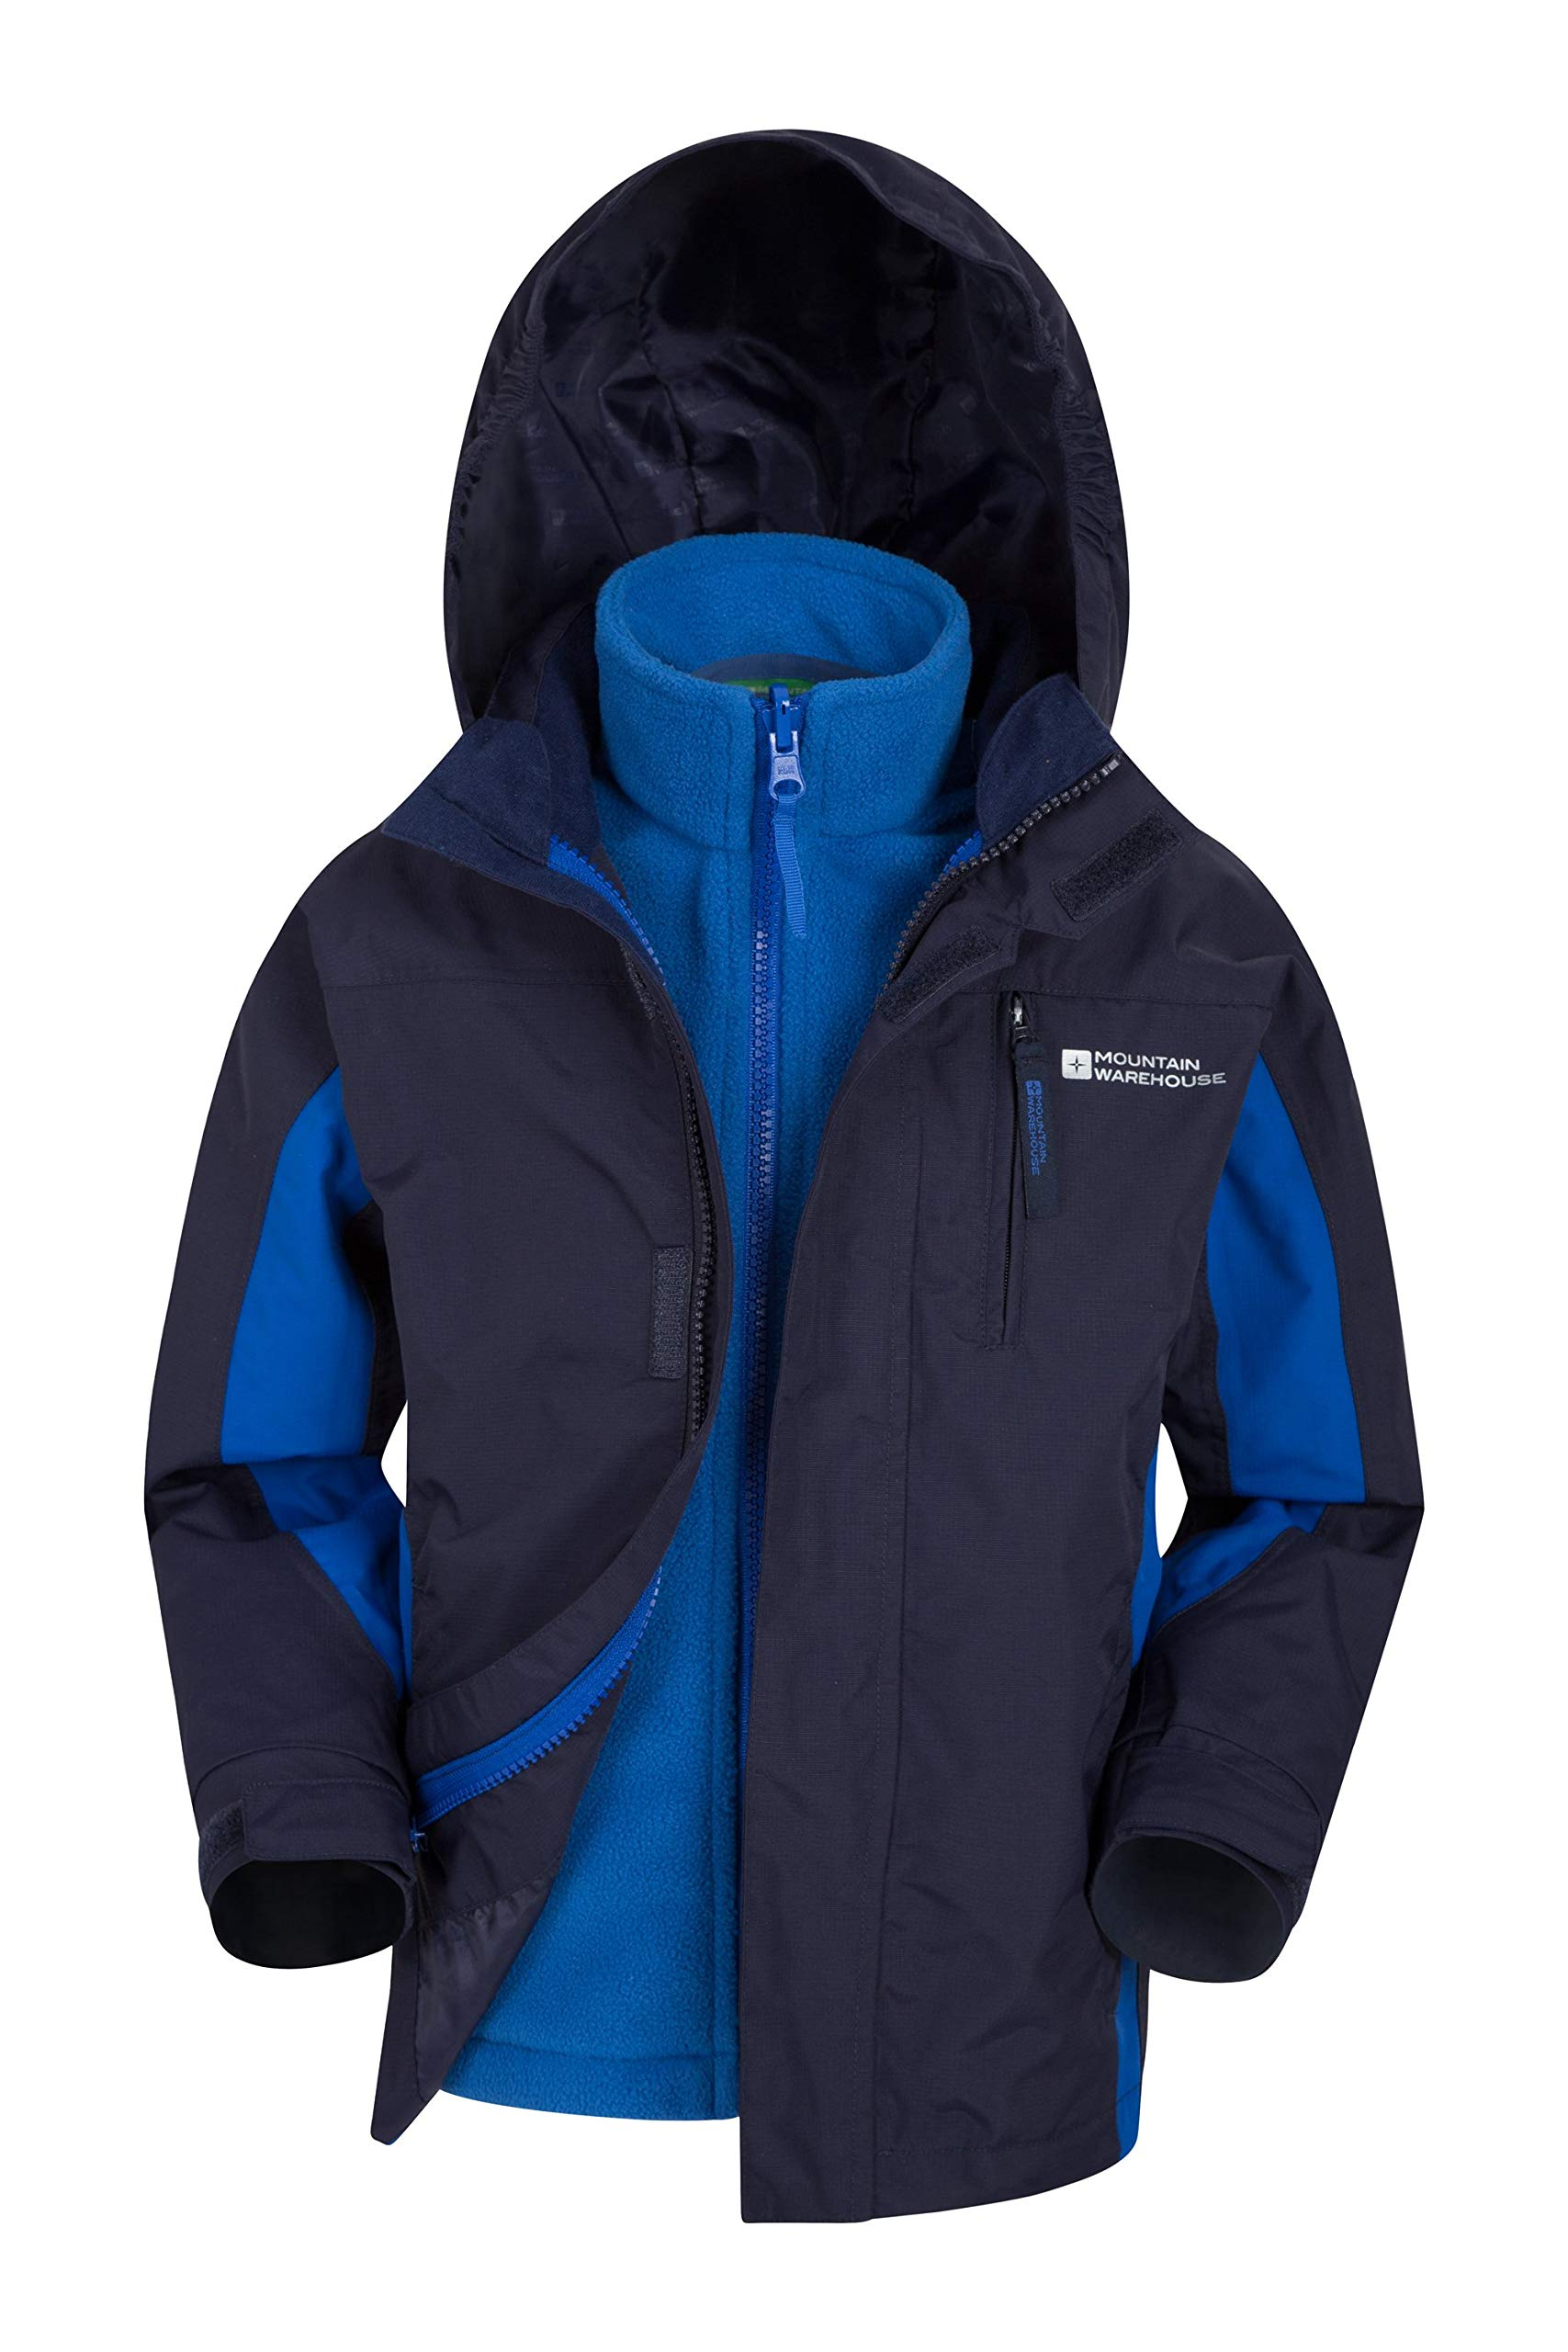 Mountain Warehouse Cannonball 3 in 1 Kids Rain Proof Jacket Cobalt 3-4 Years by Mountain Warehouse